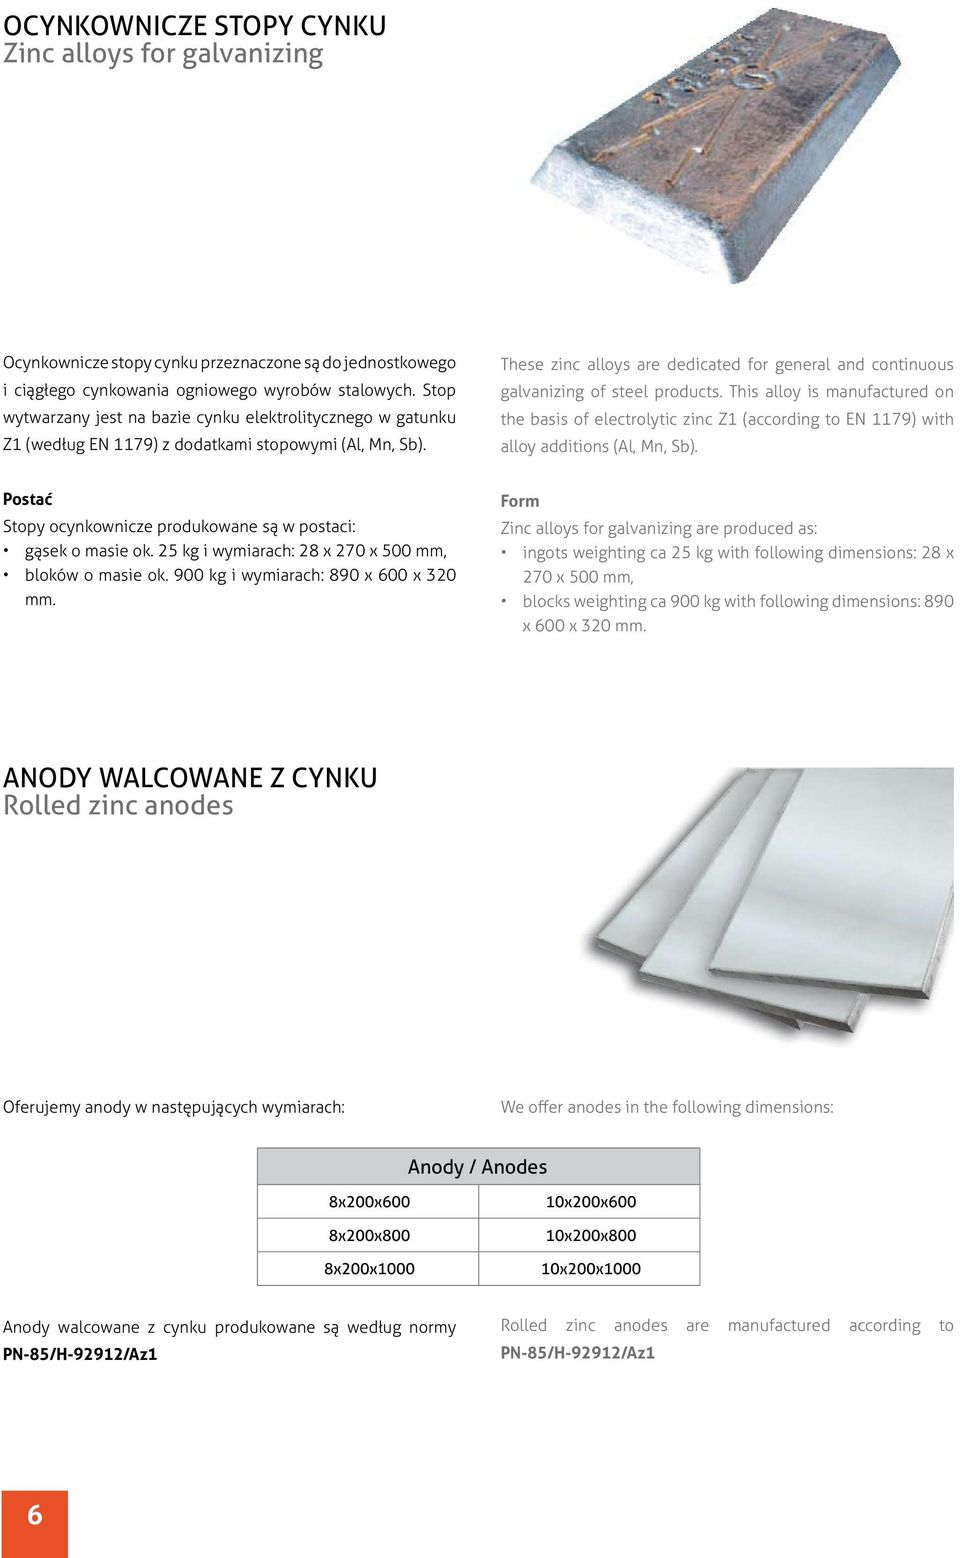 These zinc alloys are dedicated for general and continuous galvanizing of steel products.